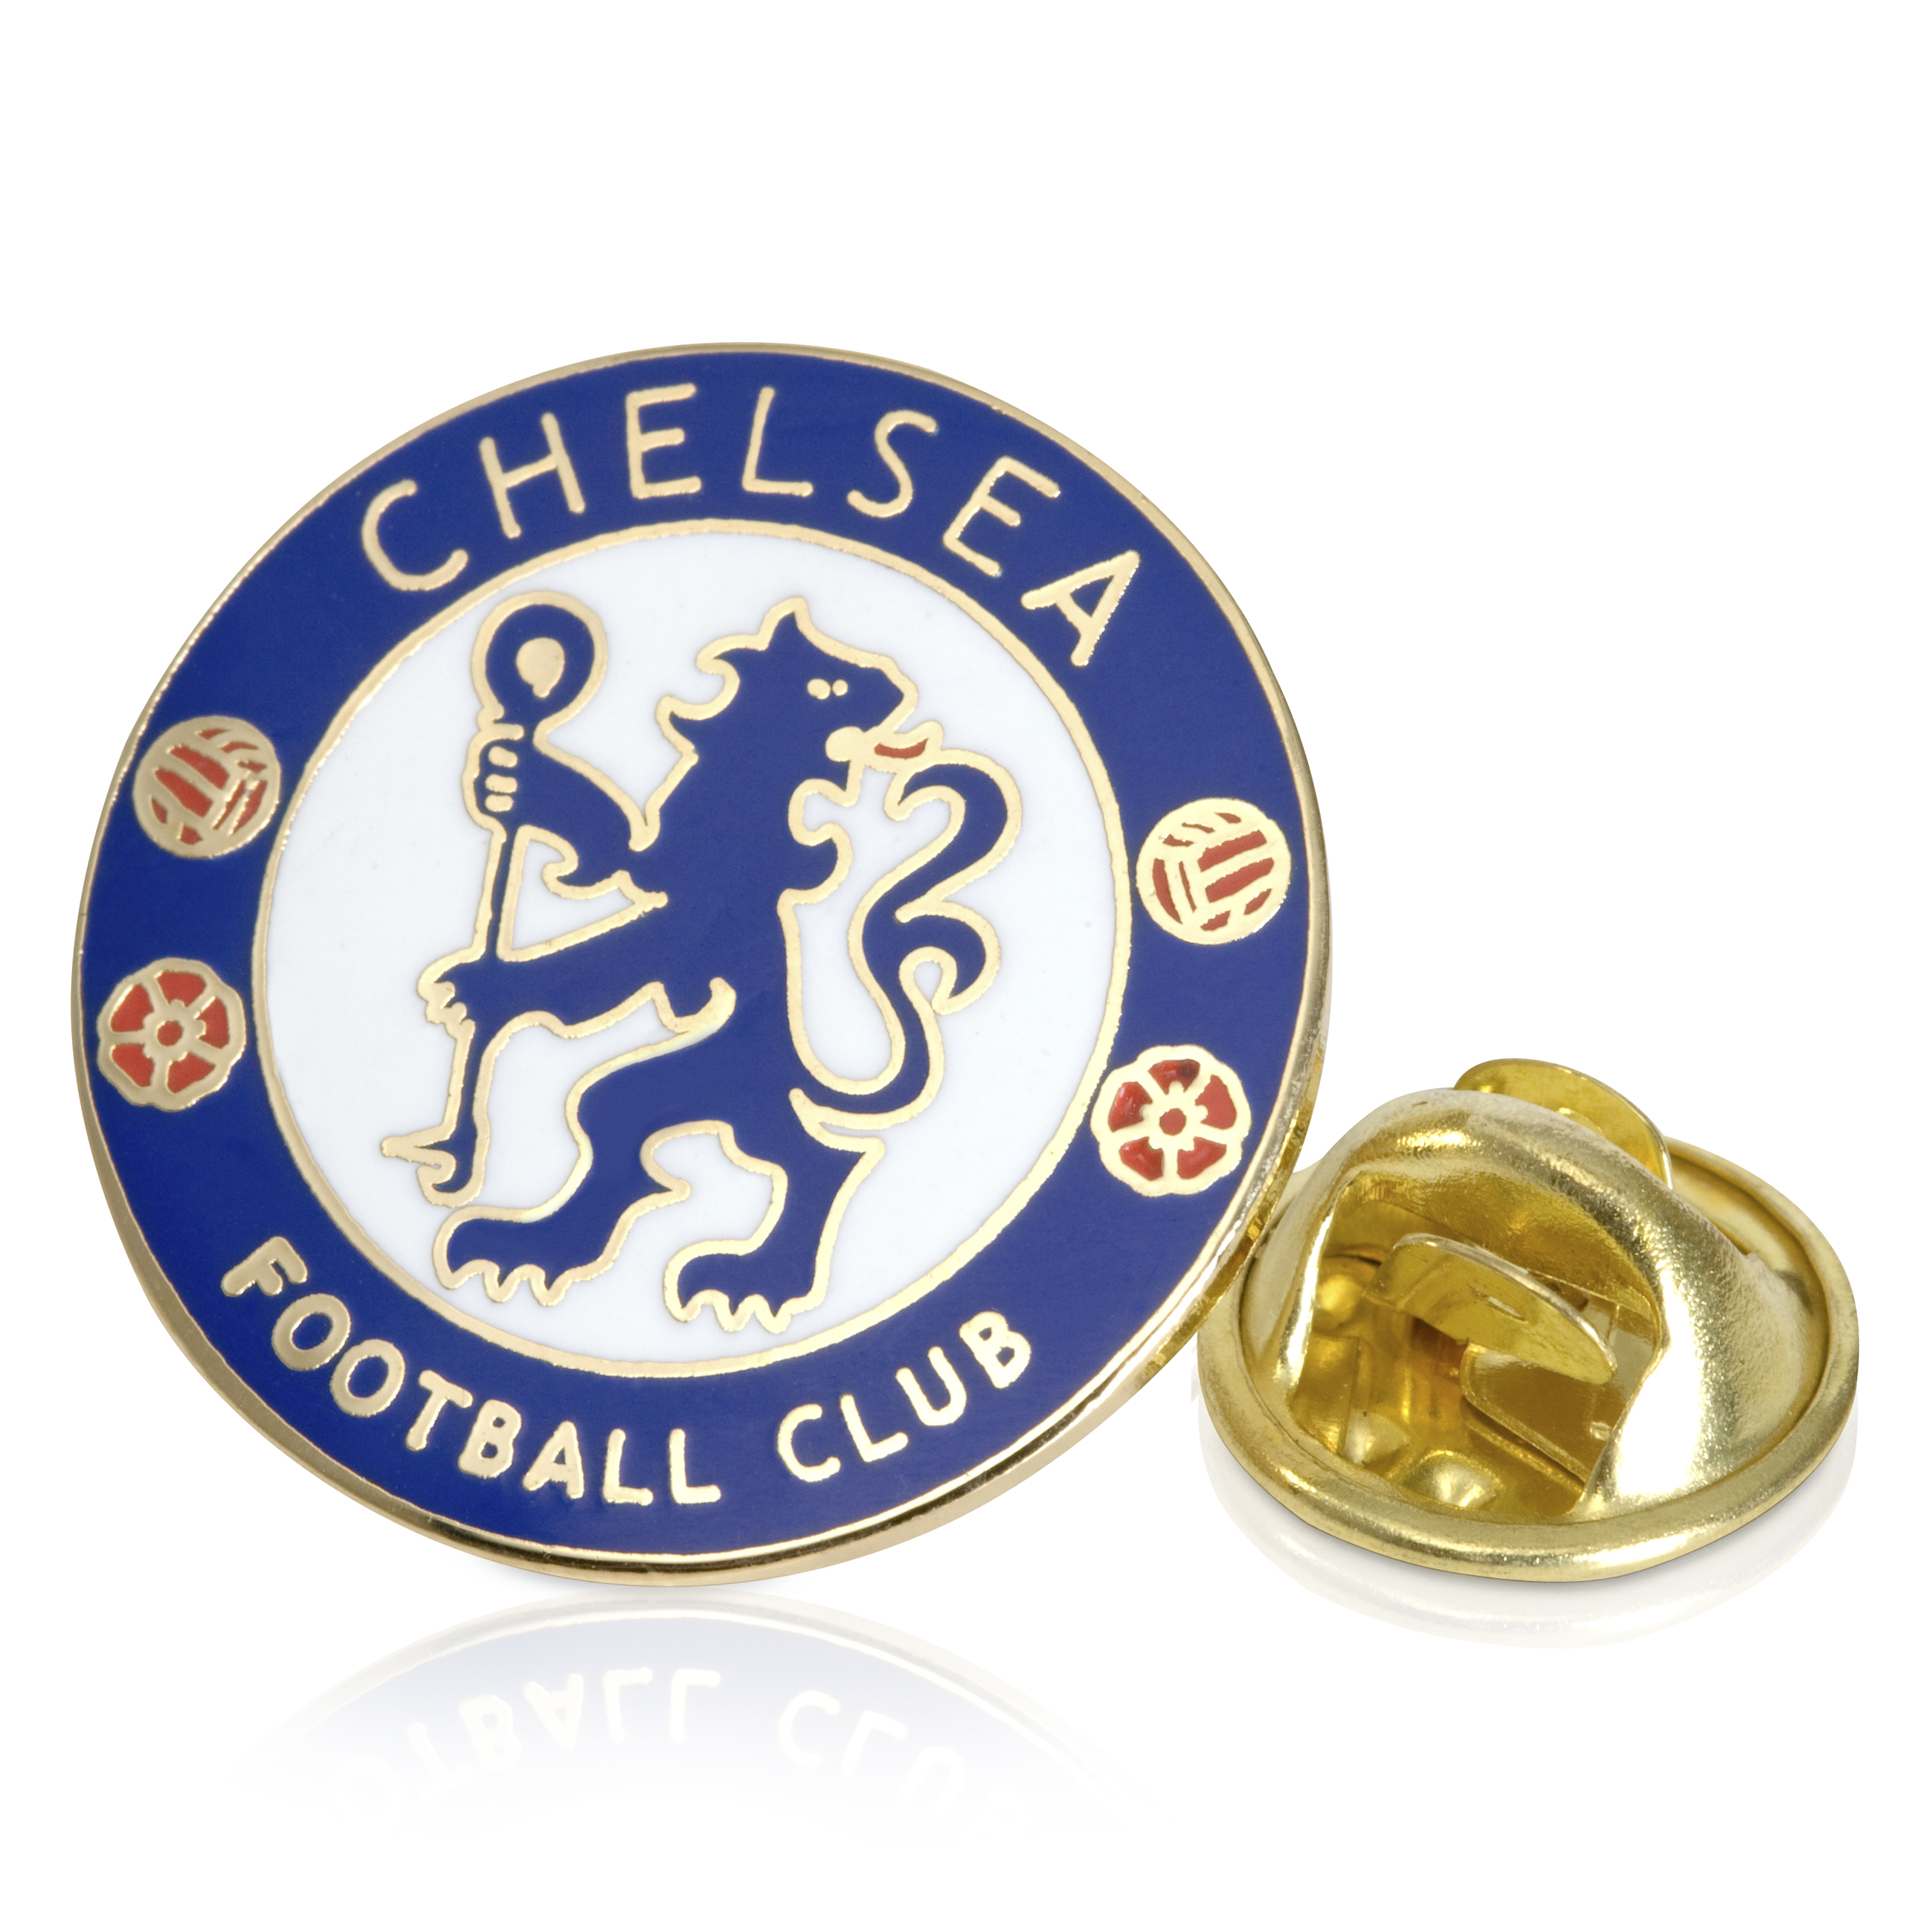 Chelsea Crest Pin Badge